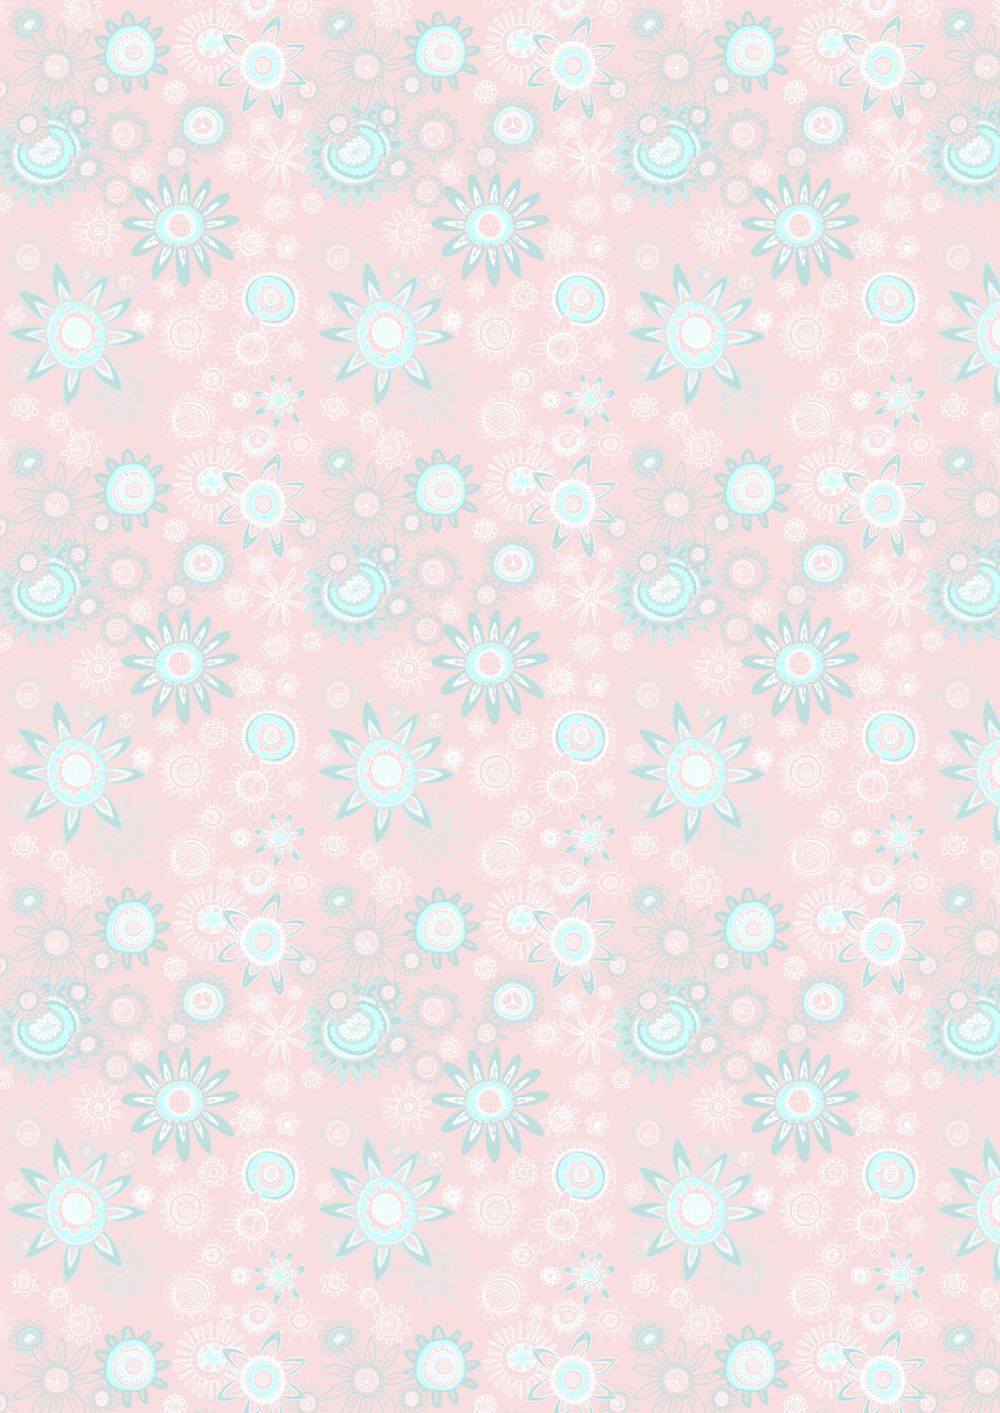 Floral flurry - image 3 - student project